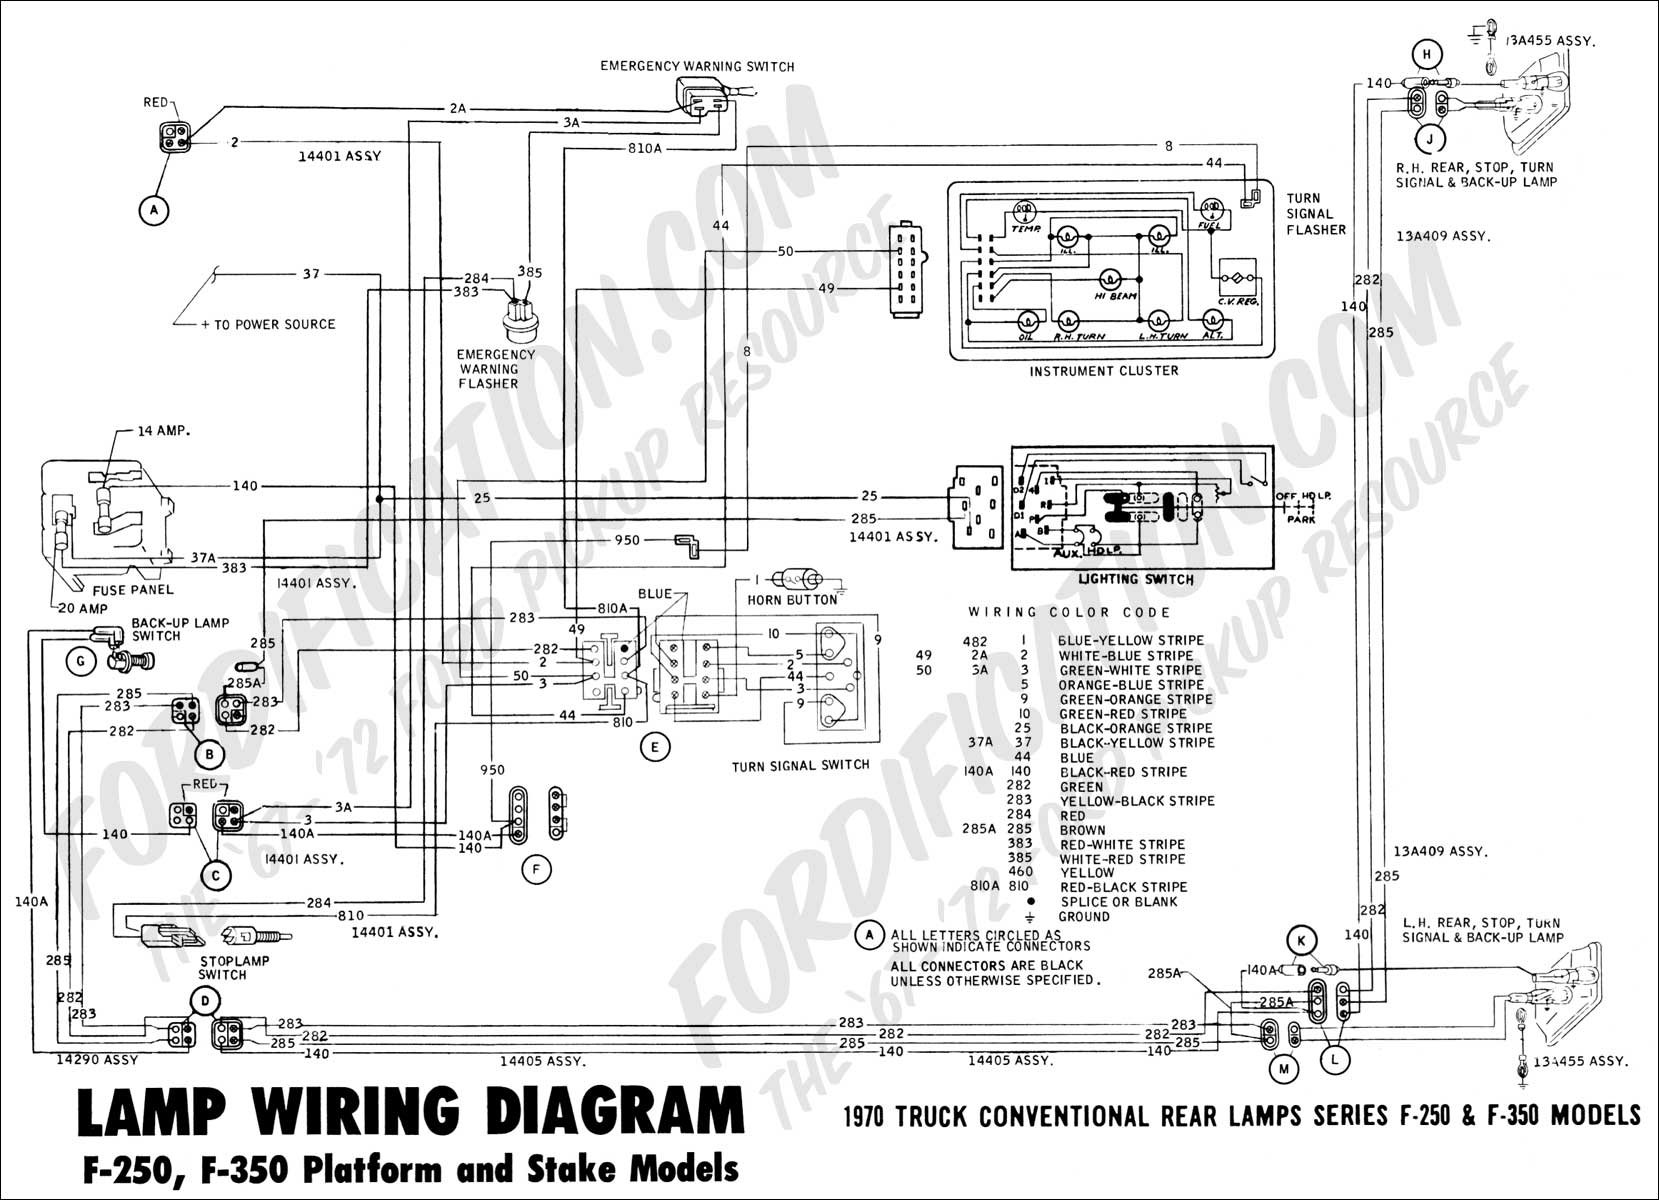 07 f750 fuse diagram Images Gallery